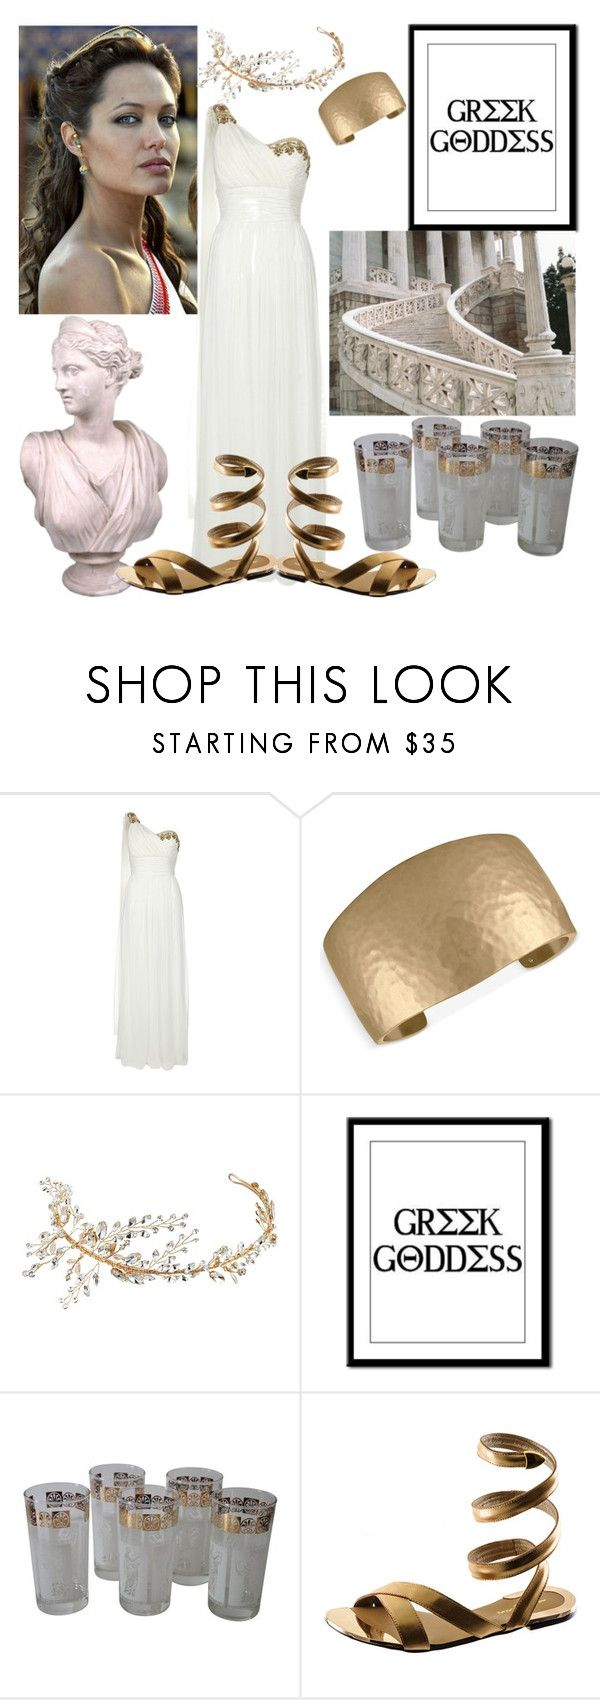 """Greek Godess"" by audreybrookezaring ❤ liked on Polyvore featuring Notte by Marchesa, Rachel Rachel Roy, Nina and Black"